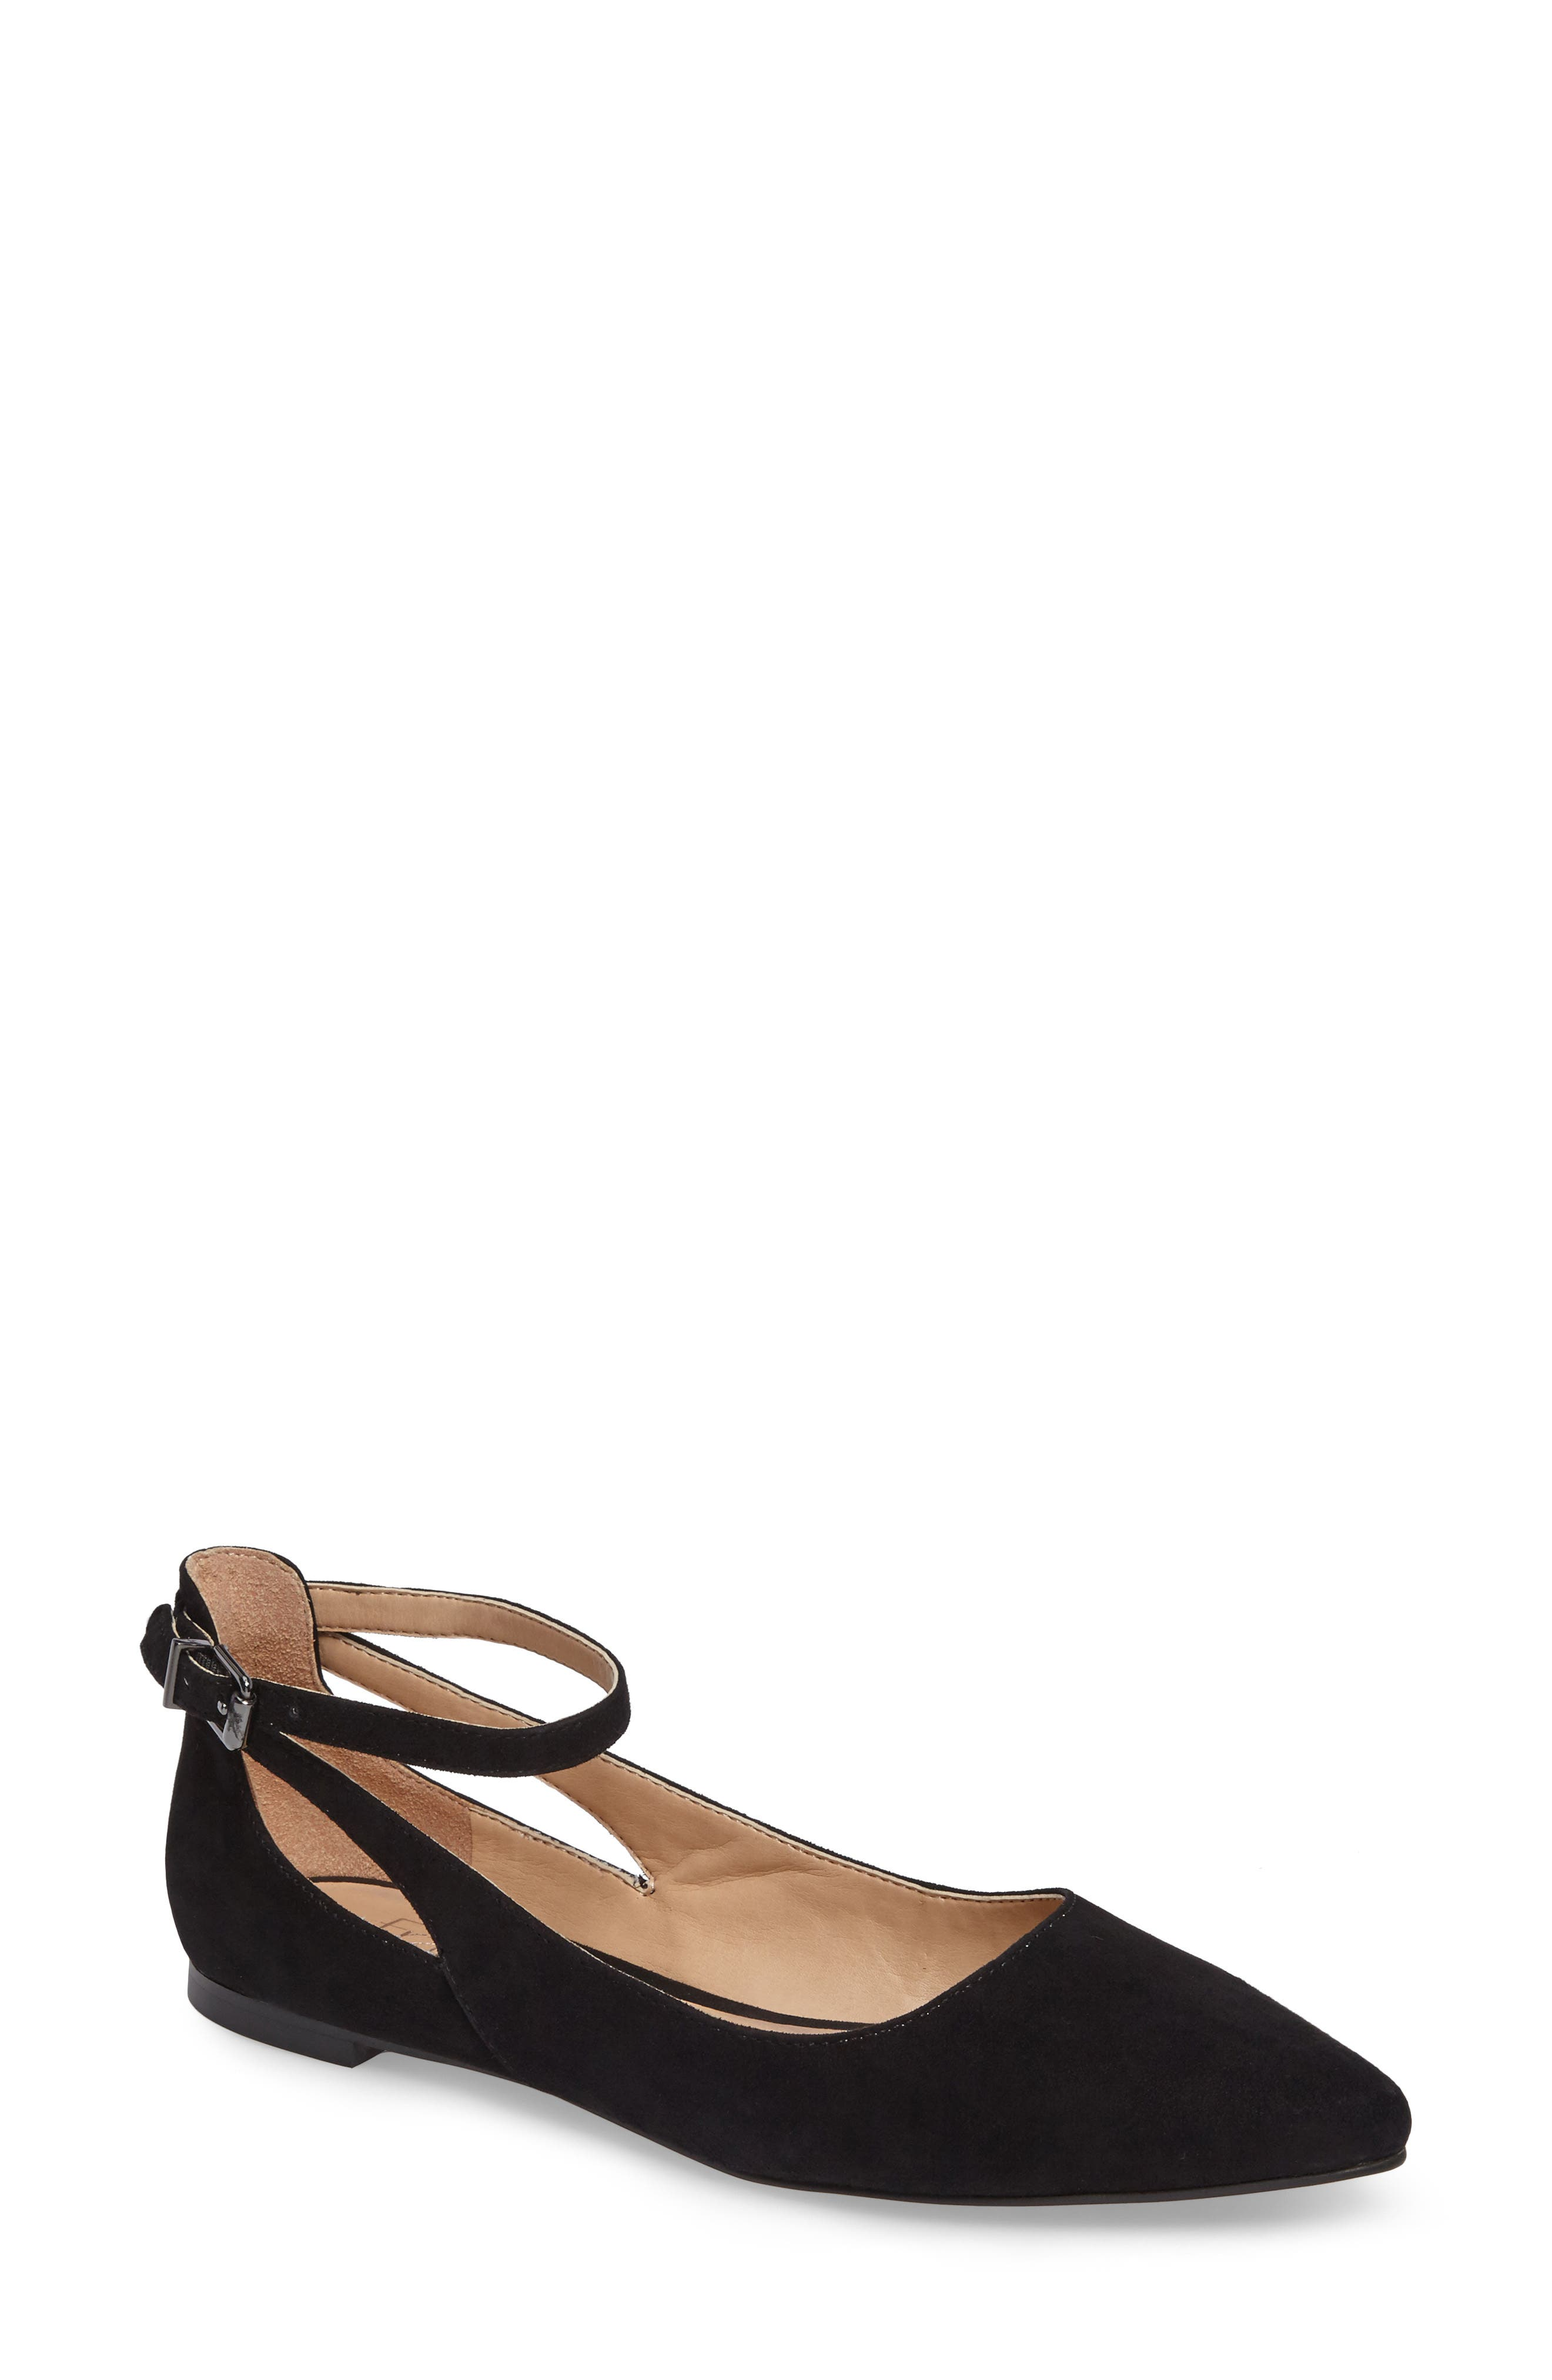 Sylvia Ankle Strap Flat,                         Main,                         color,